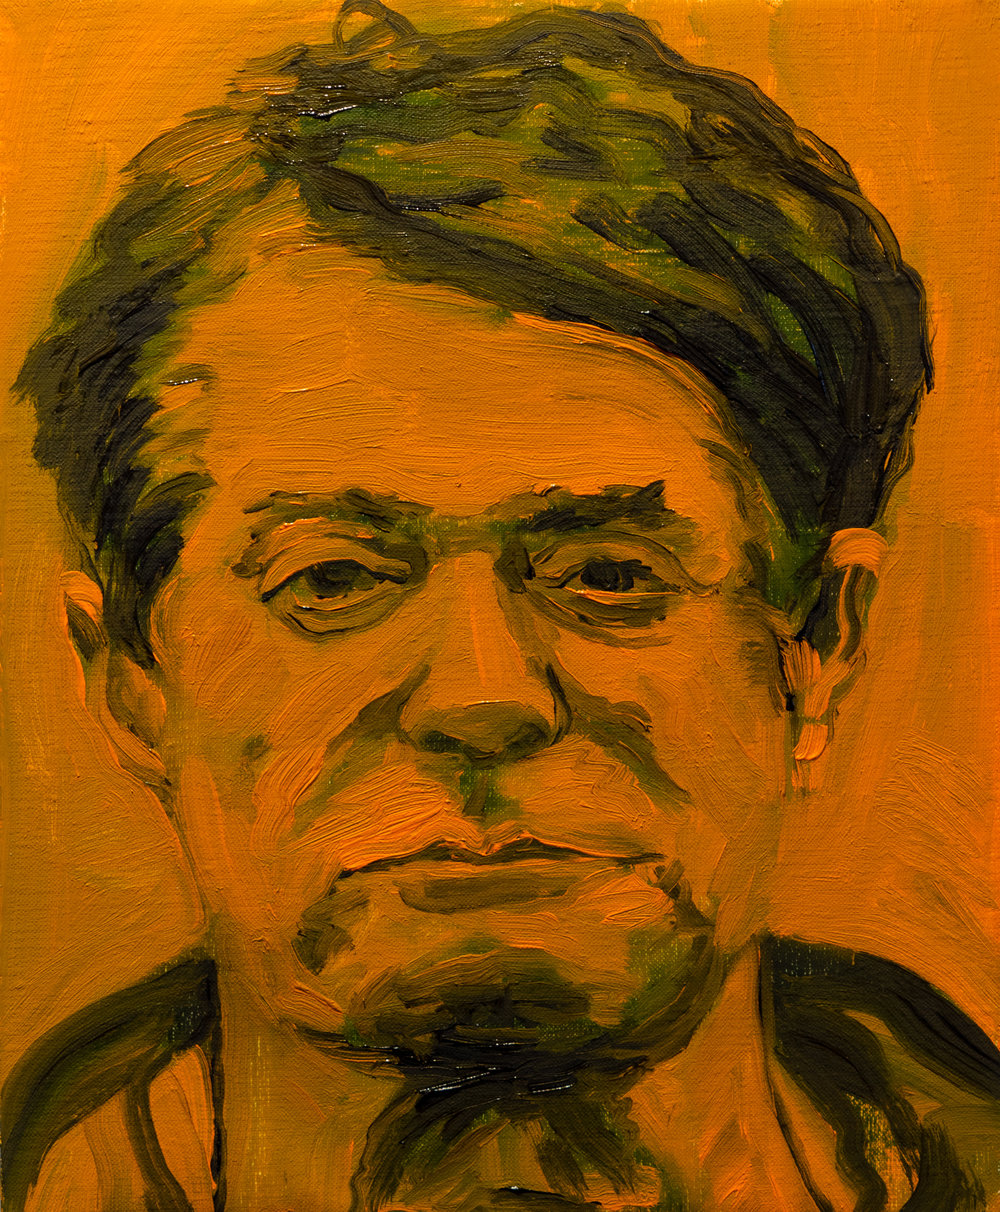 Billy Jacobs,  Treason (Manafort) , 2018, oil on linen, 10 x 8 inches